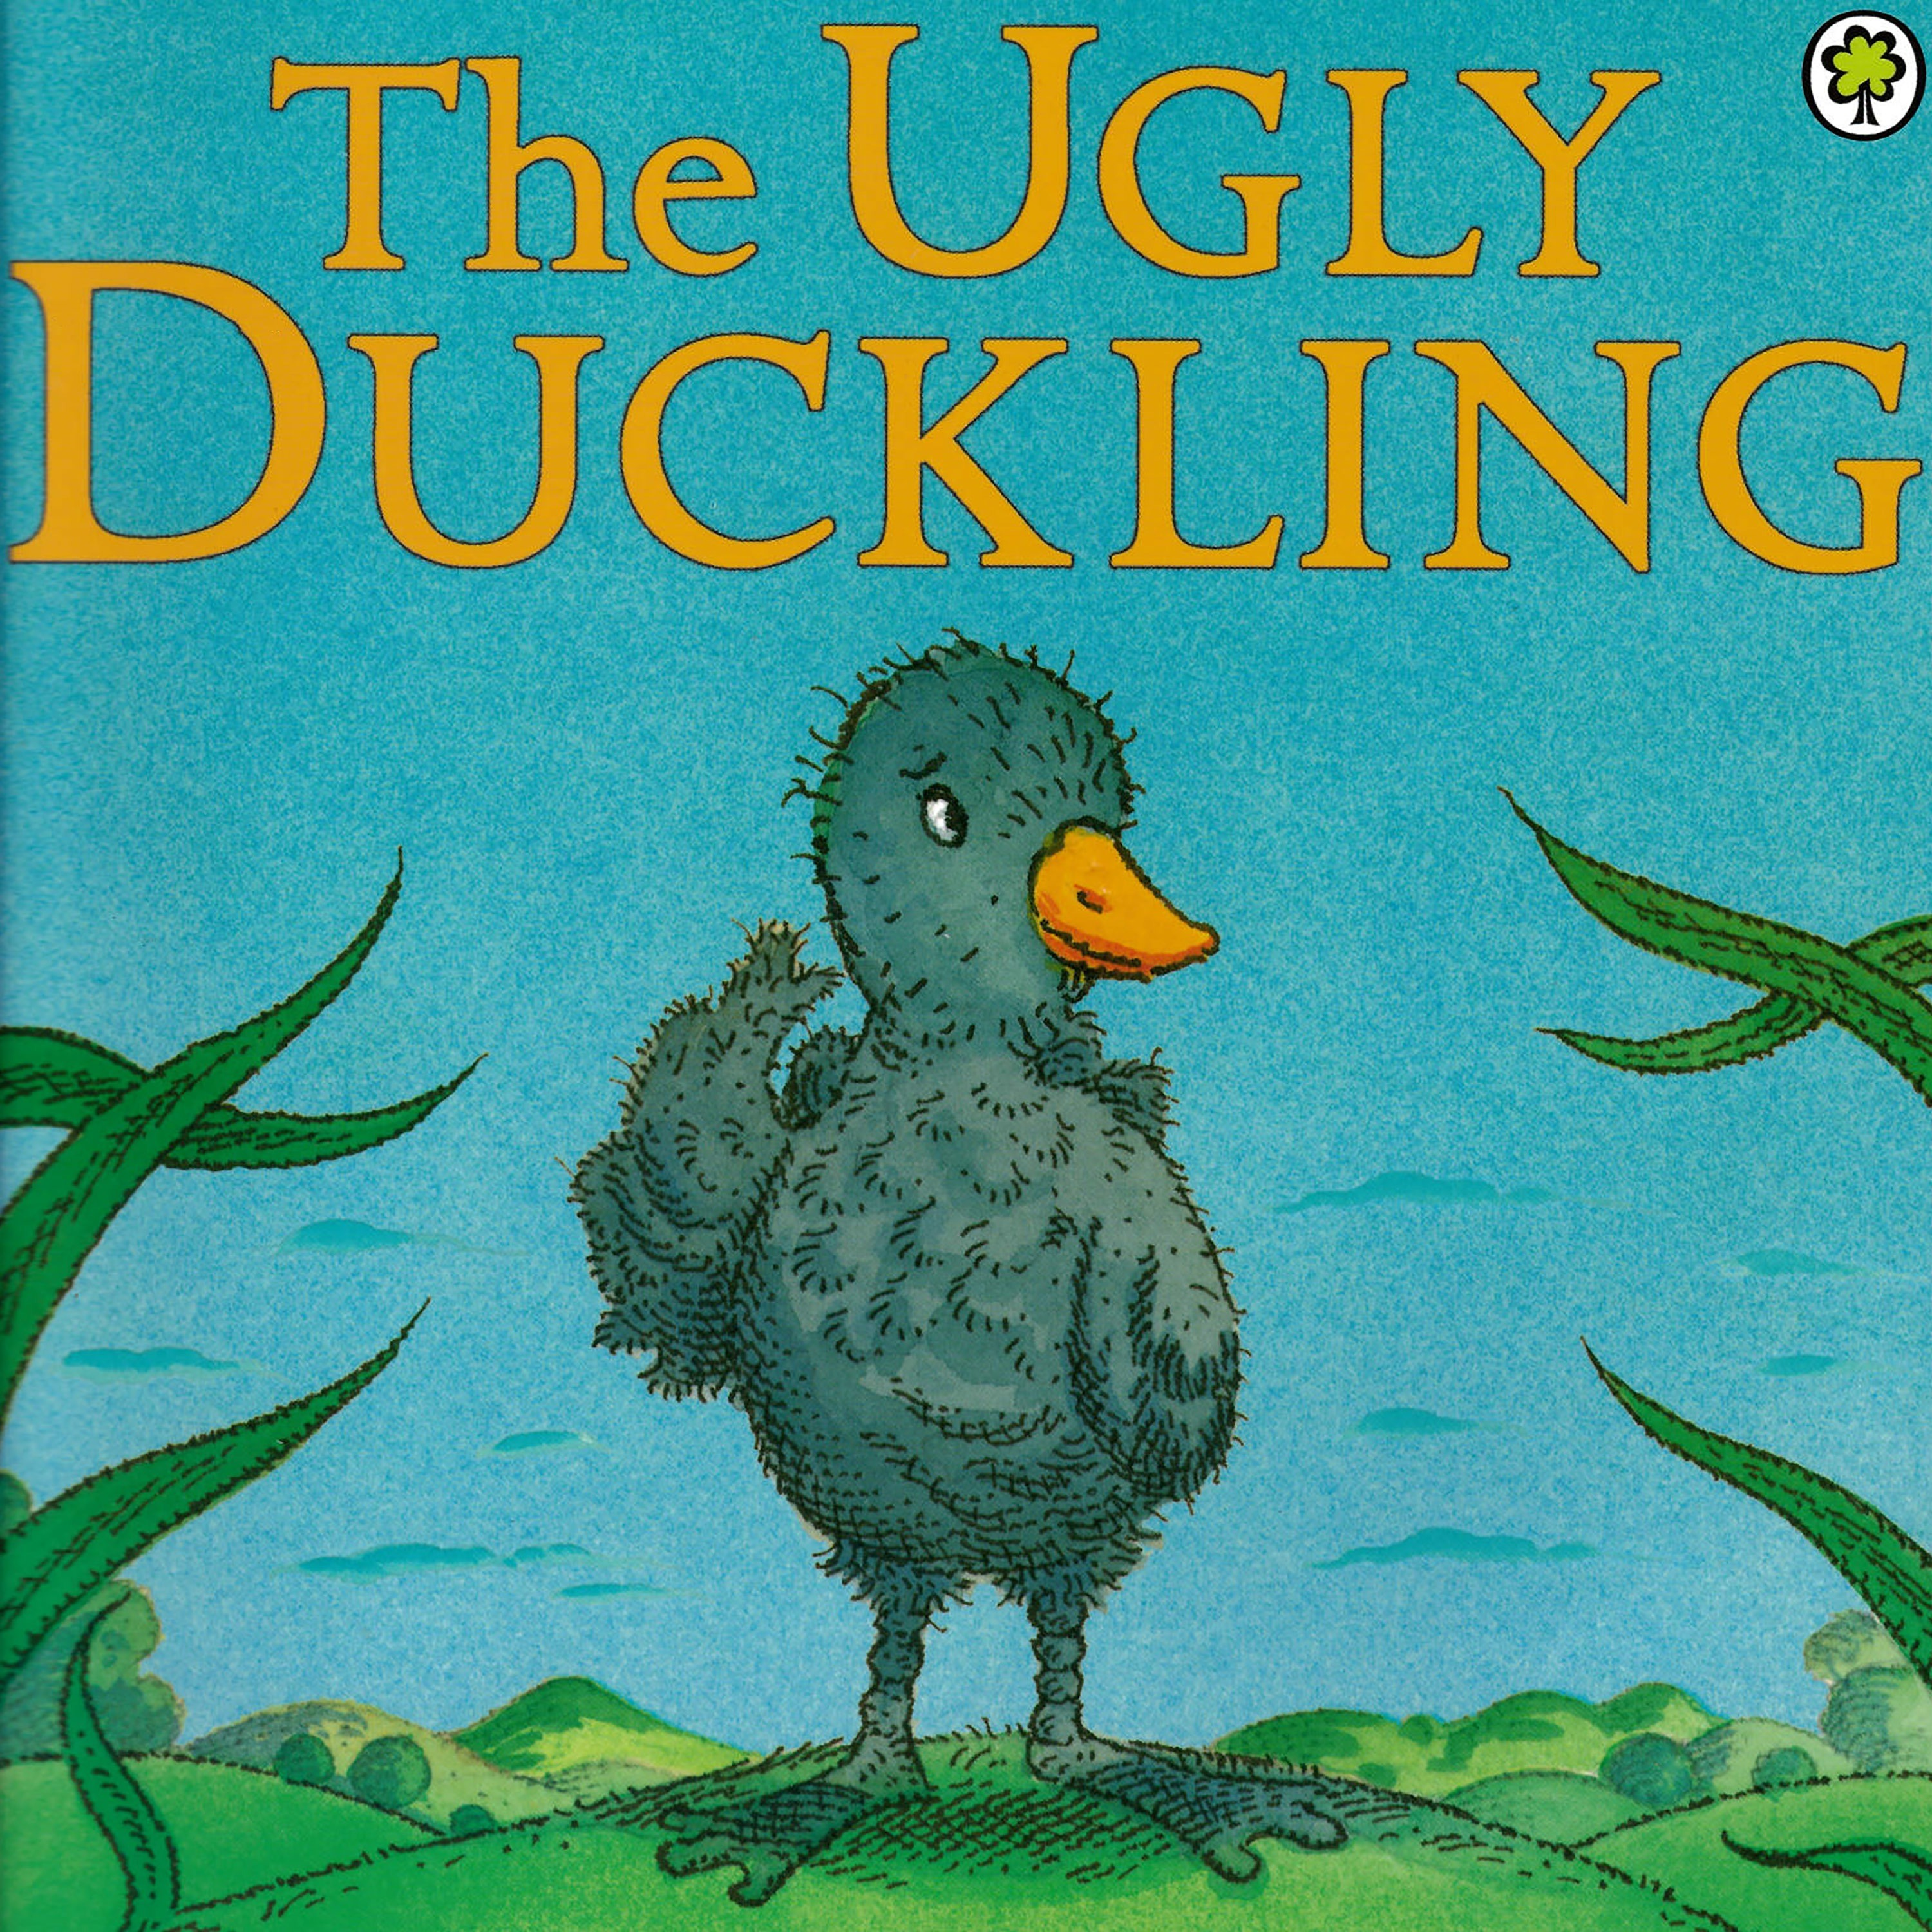 'The Ugly Duckling' by Ian Beck